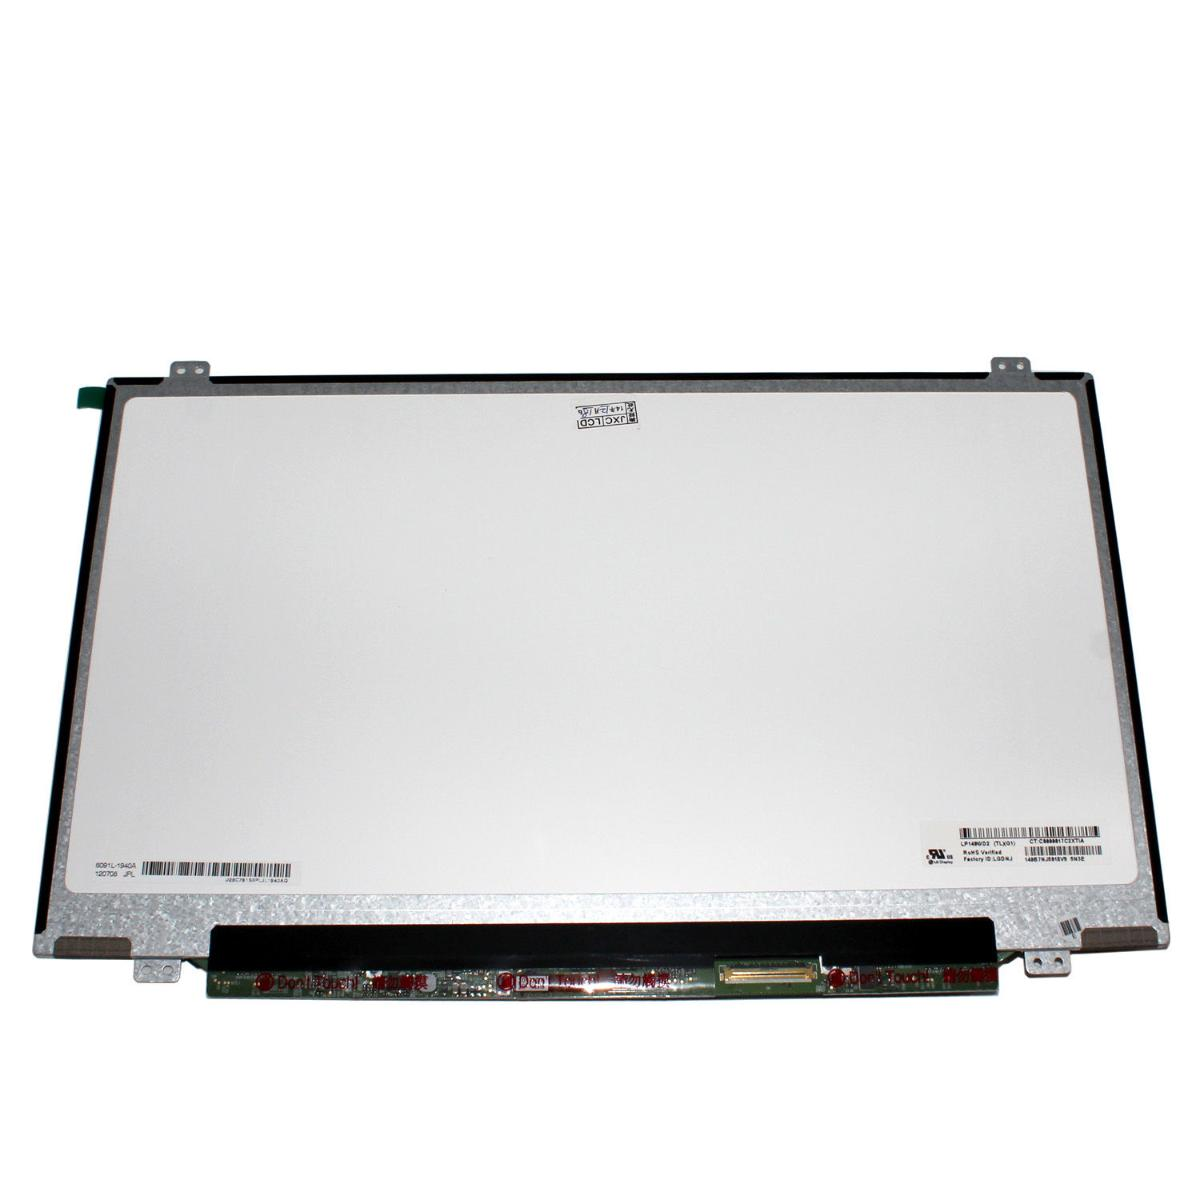 Οθόνη Laptop 14.0 LED Screen 1600x900 LED 40 pin Slim (Kωδ. 1-2824)